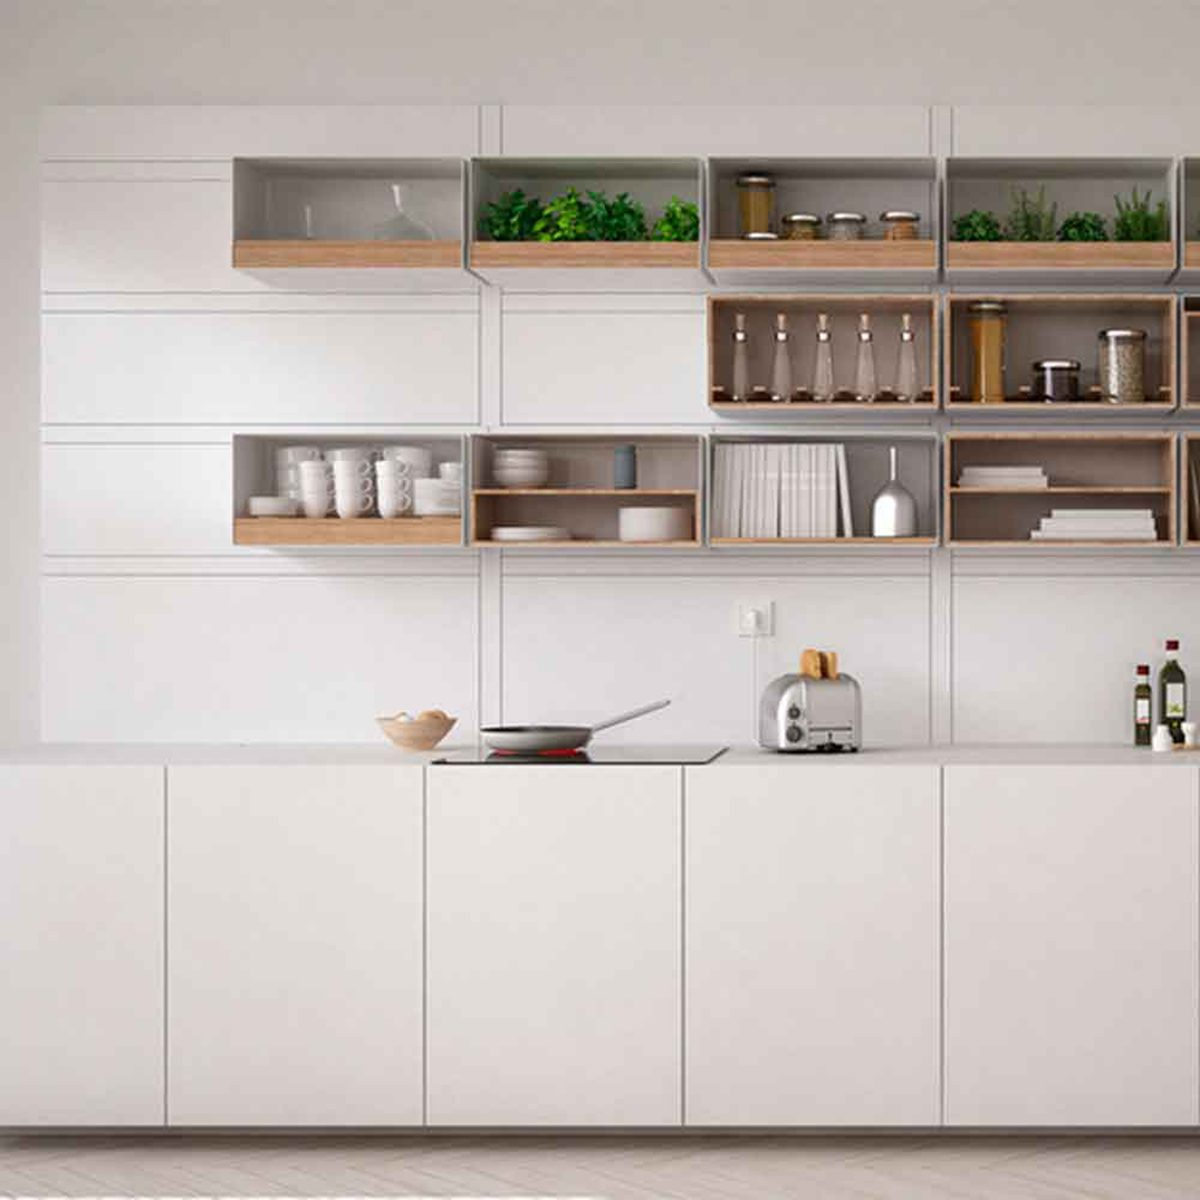 White kitchen with high wooden shelving